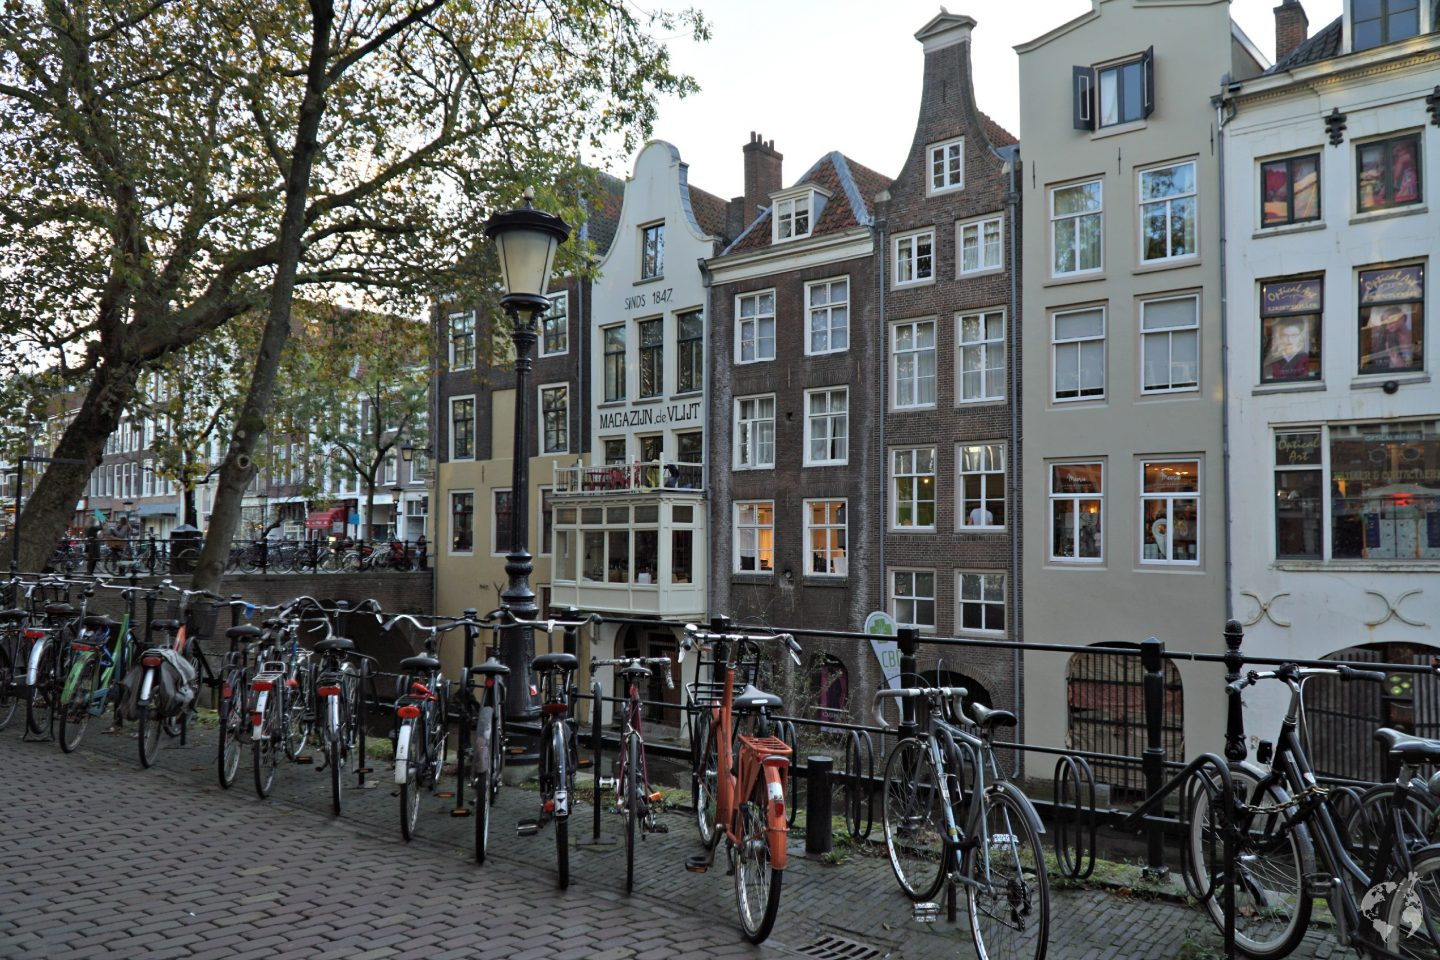 utrecht amsterdam how to go by train